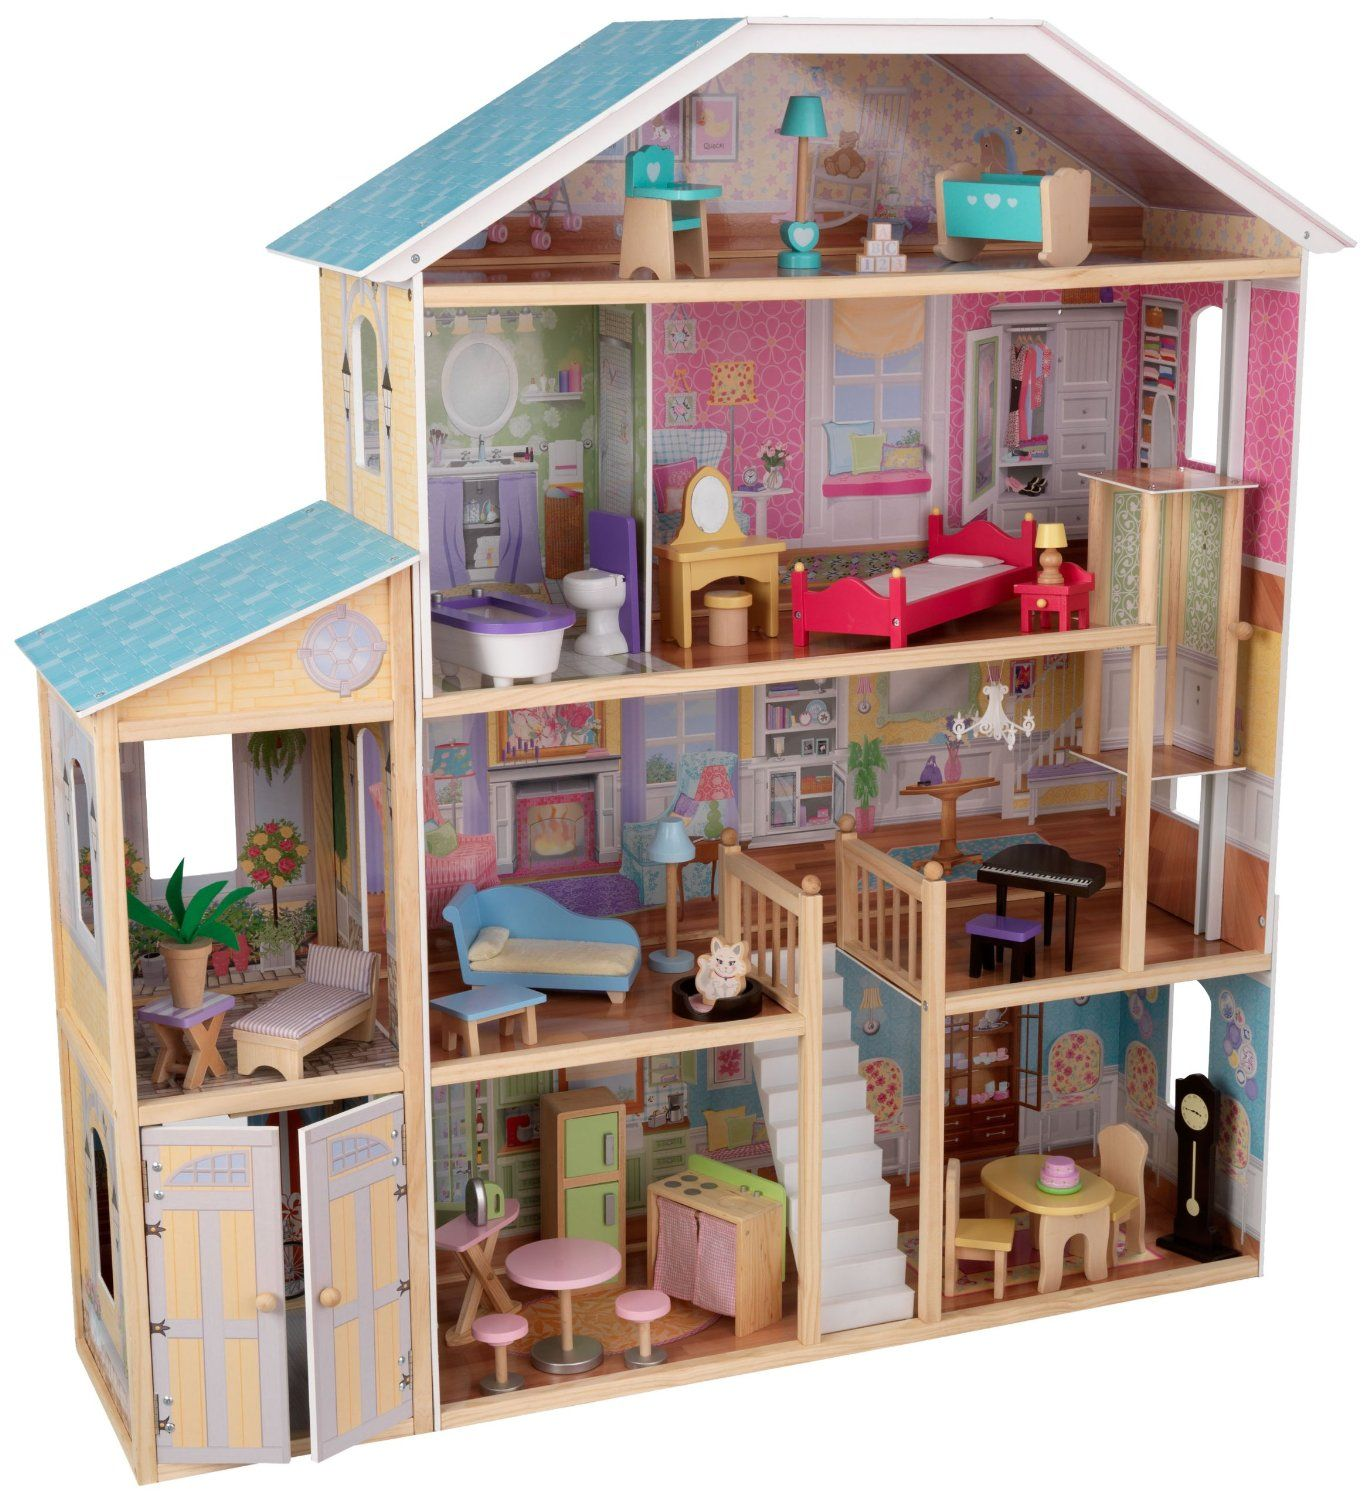 majestic create your own bedroom games. KidKraft Majestic Mansion Dollhouse with Furniture  Toys Games May 2014 Made from Cardboard Boxes Toy toys and Barbie house